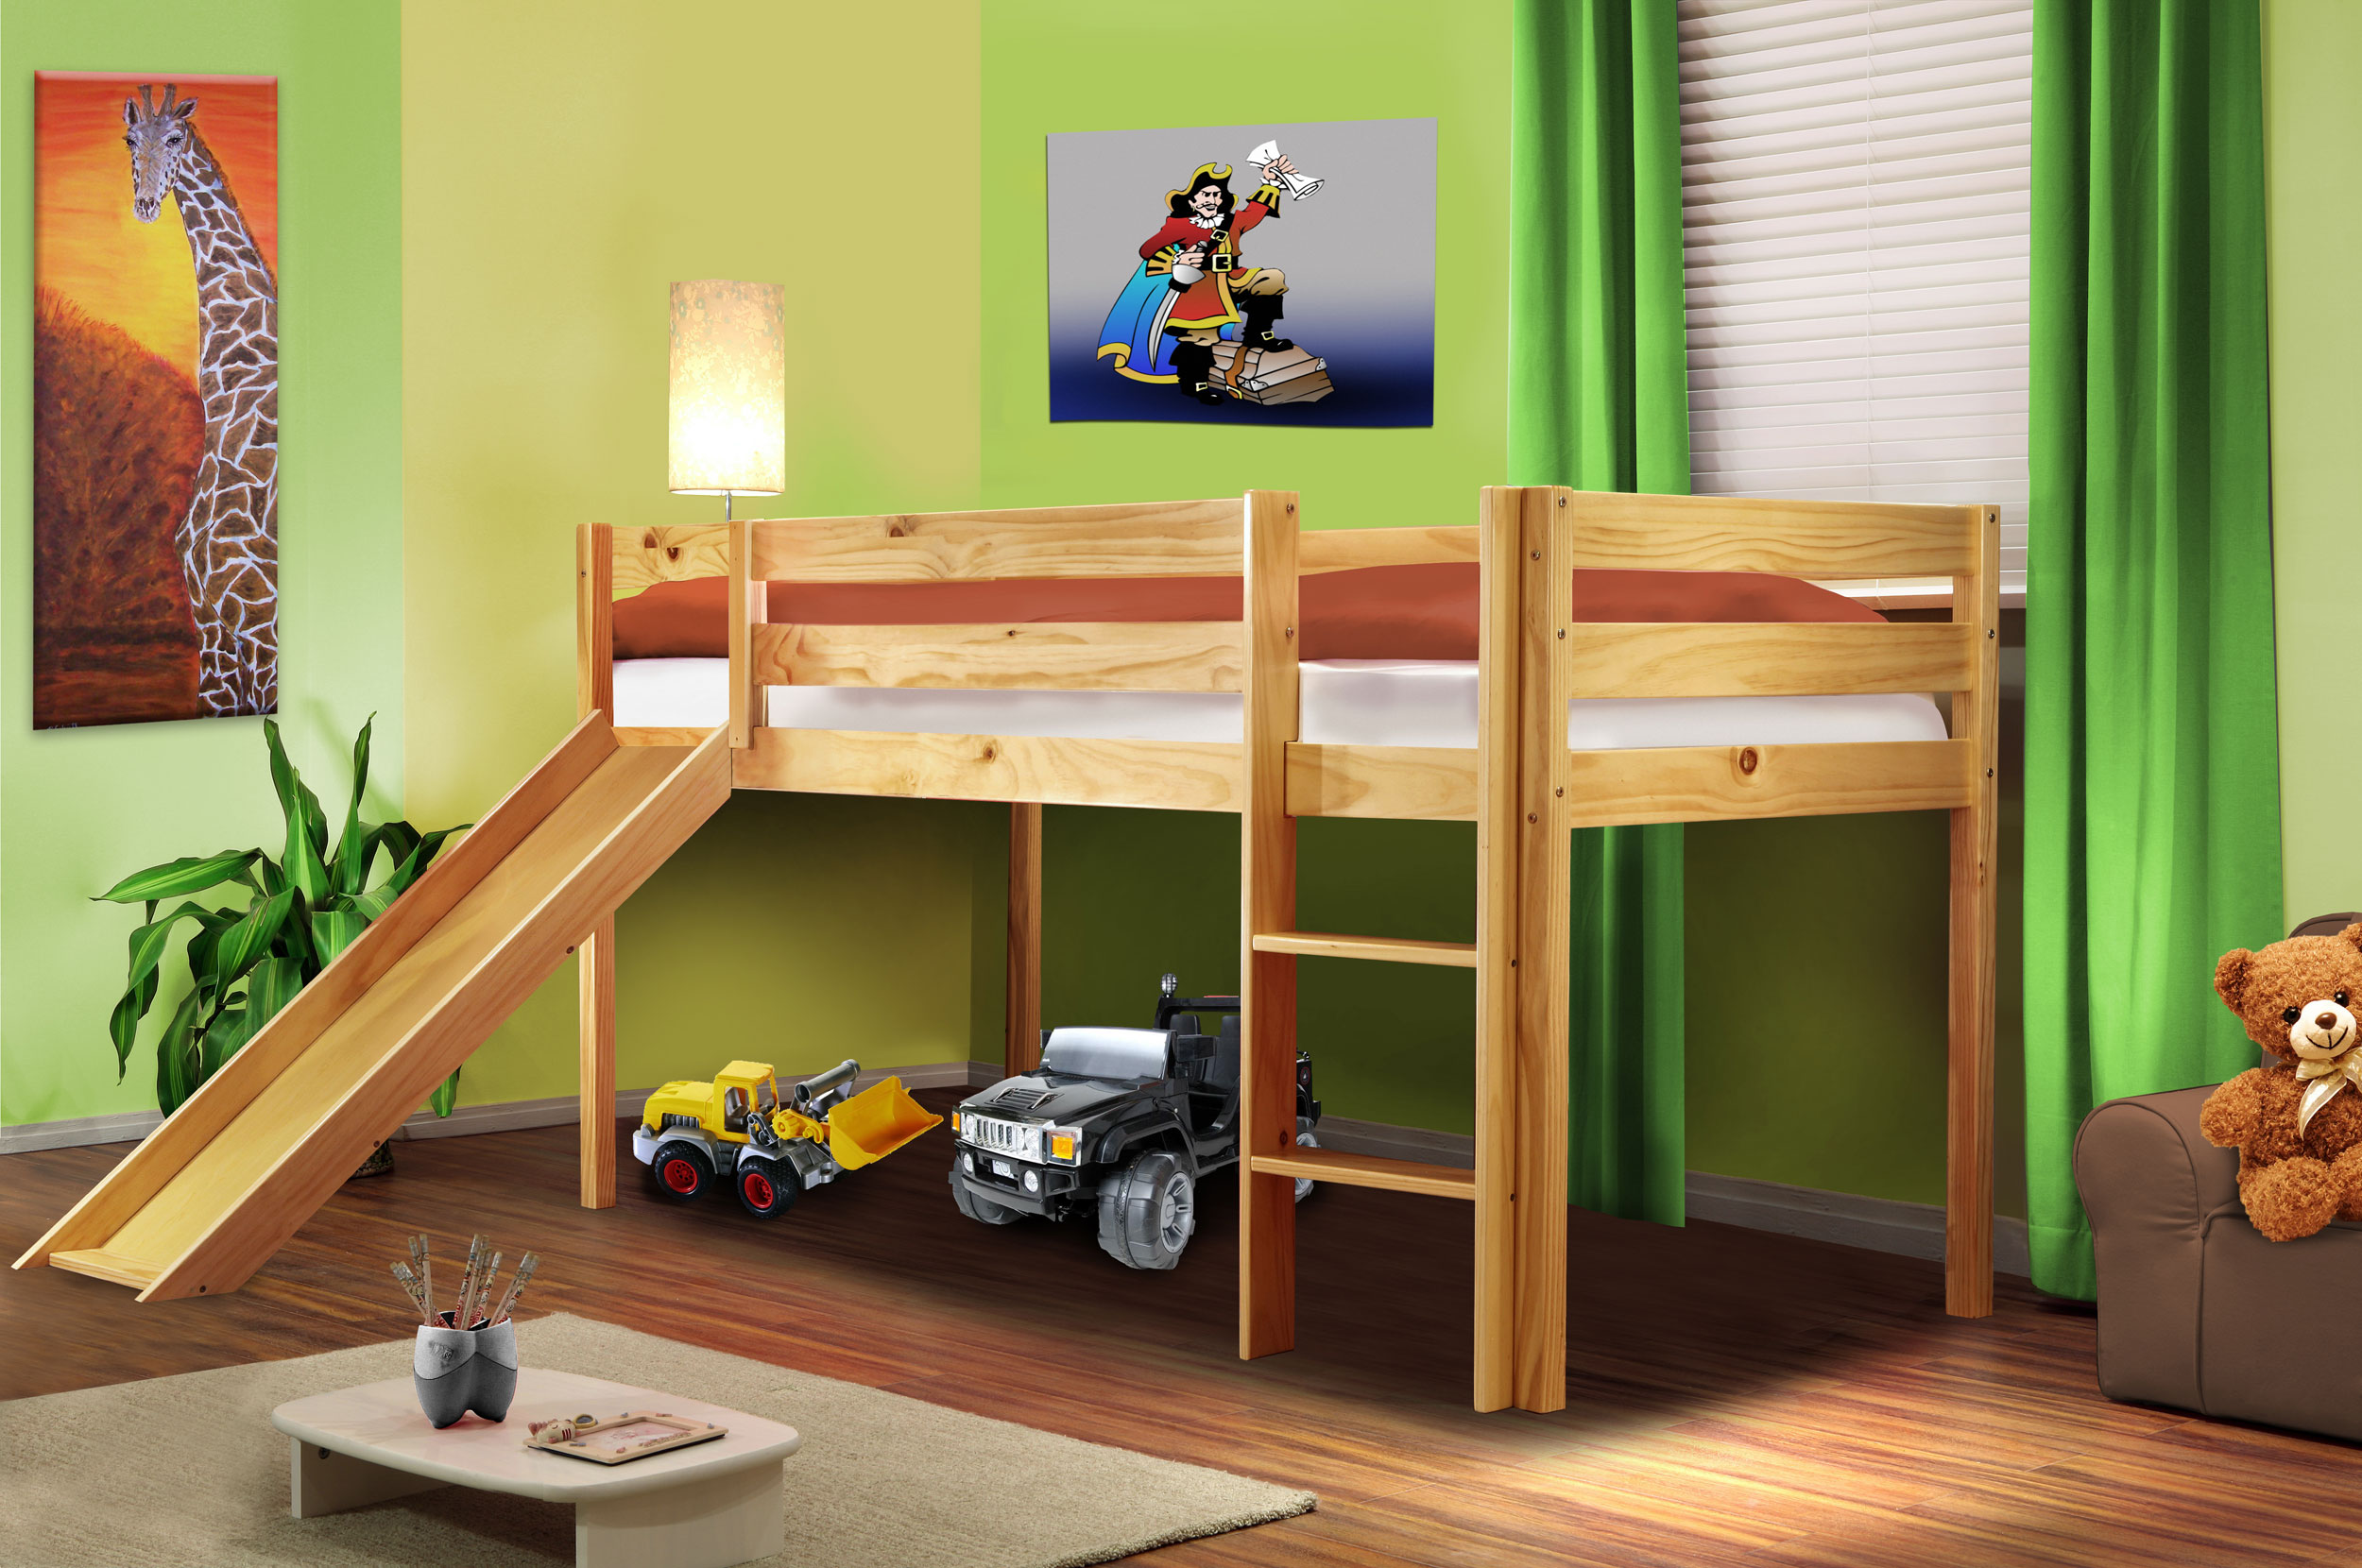 hochbett kinderbett spielbett mit rutsche massiv kiefer. Black Bedroom Furniture Sets. Home Design Ideas